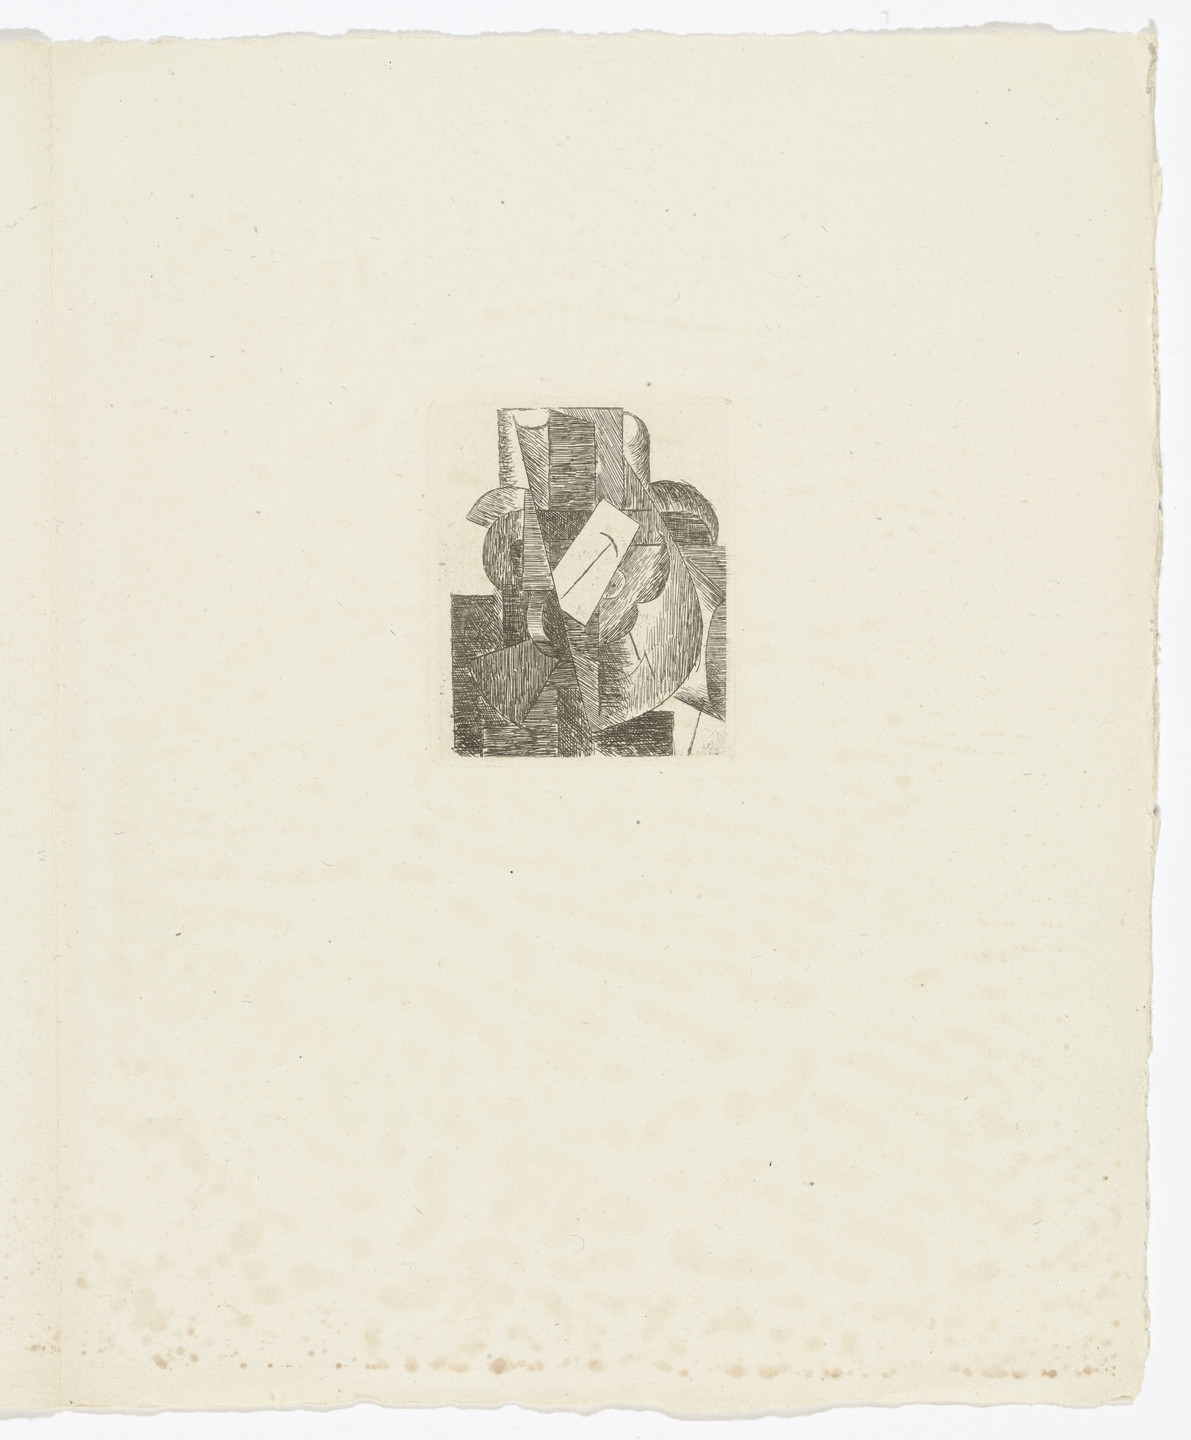 Pablo Picasso. L'Homme au chapeau (Man with a Hat) (plate, page, 3) from Du Cubisme (On Cubism). 1914, published 1947